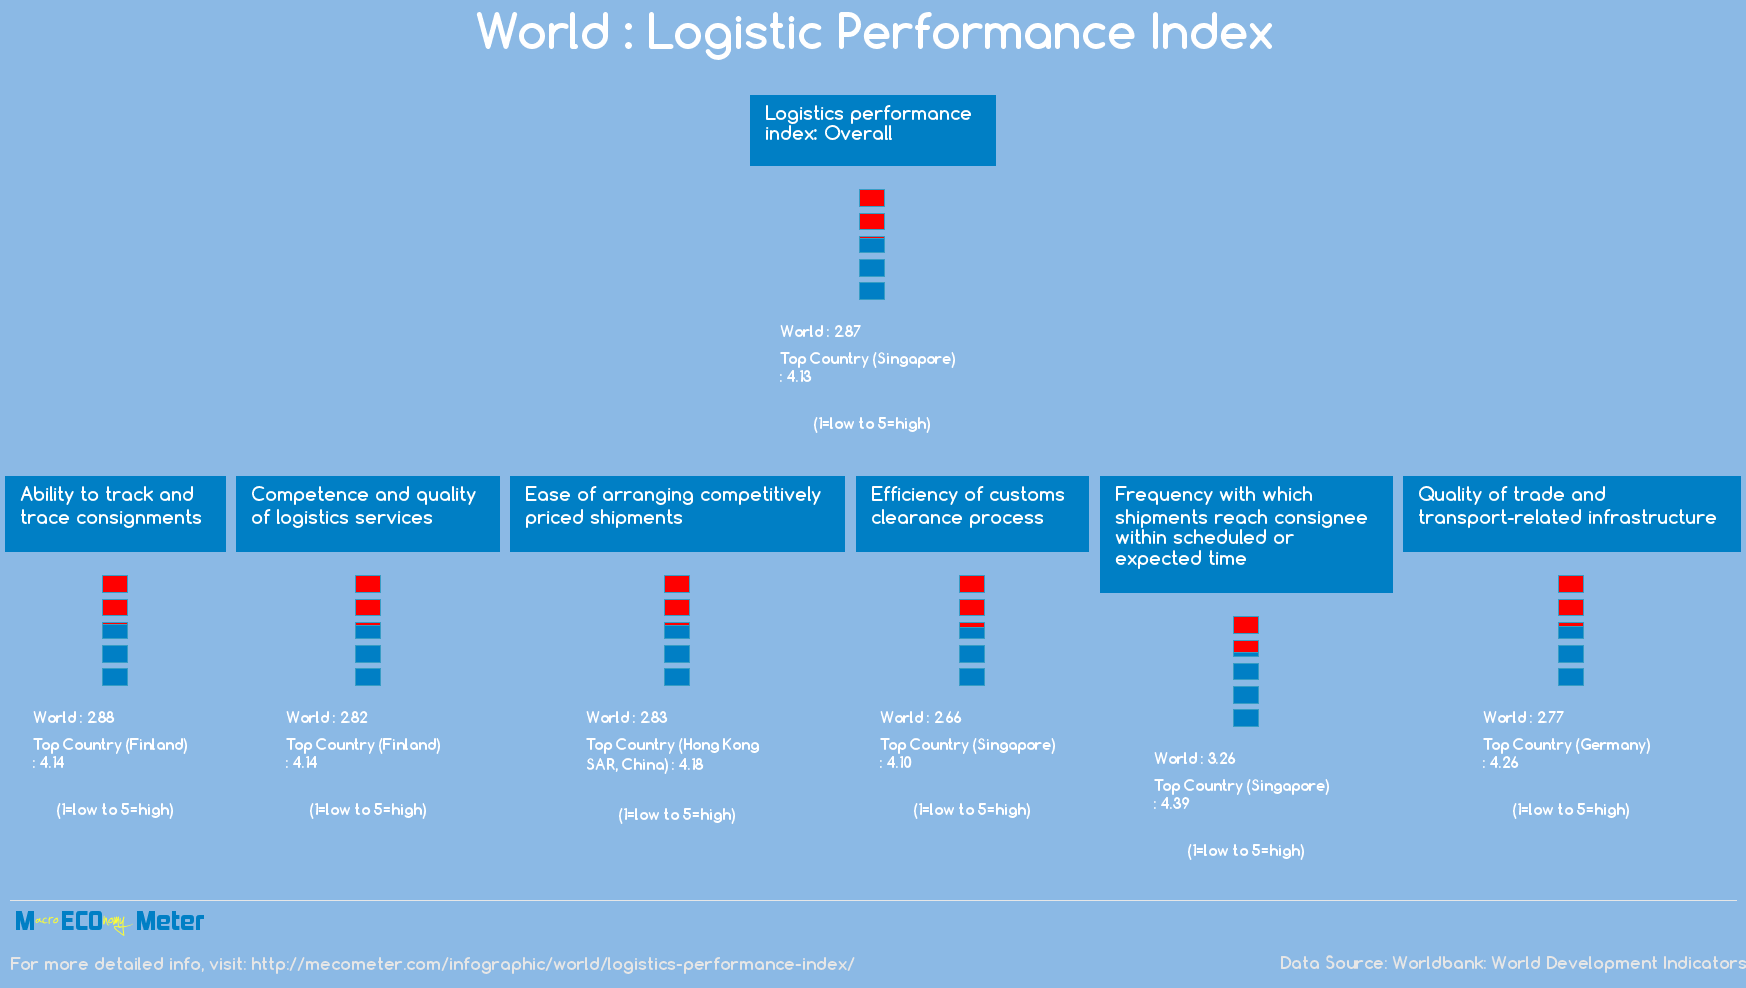 world : Logistic Performance Index